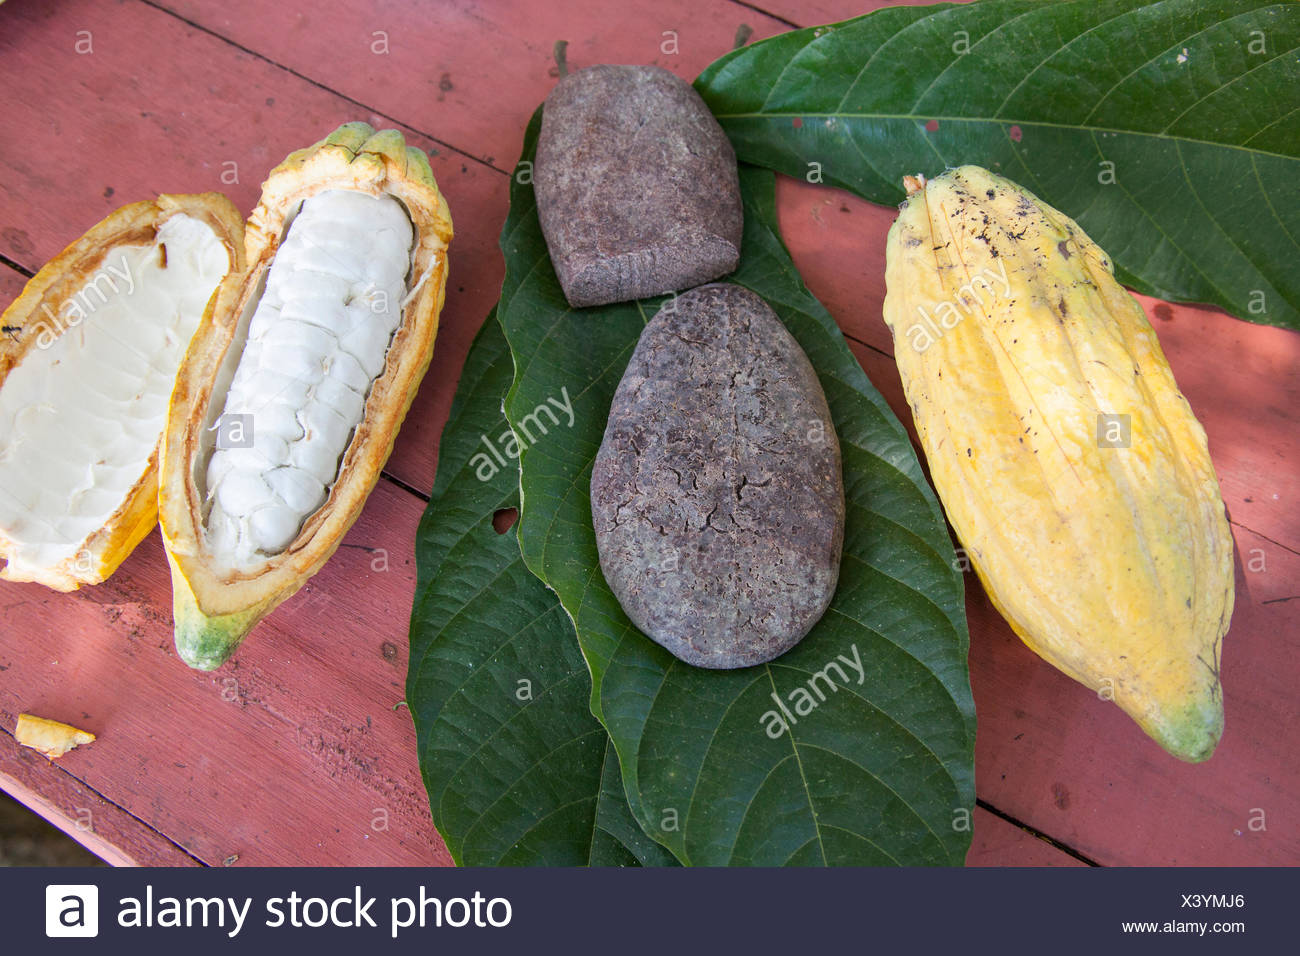 Cacao fruits and artisanal chocolate. - Stock Image